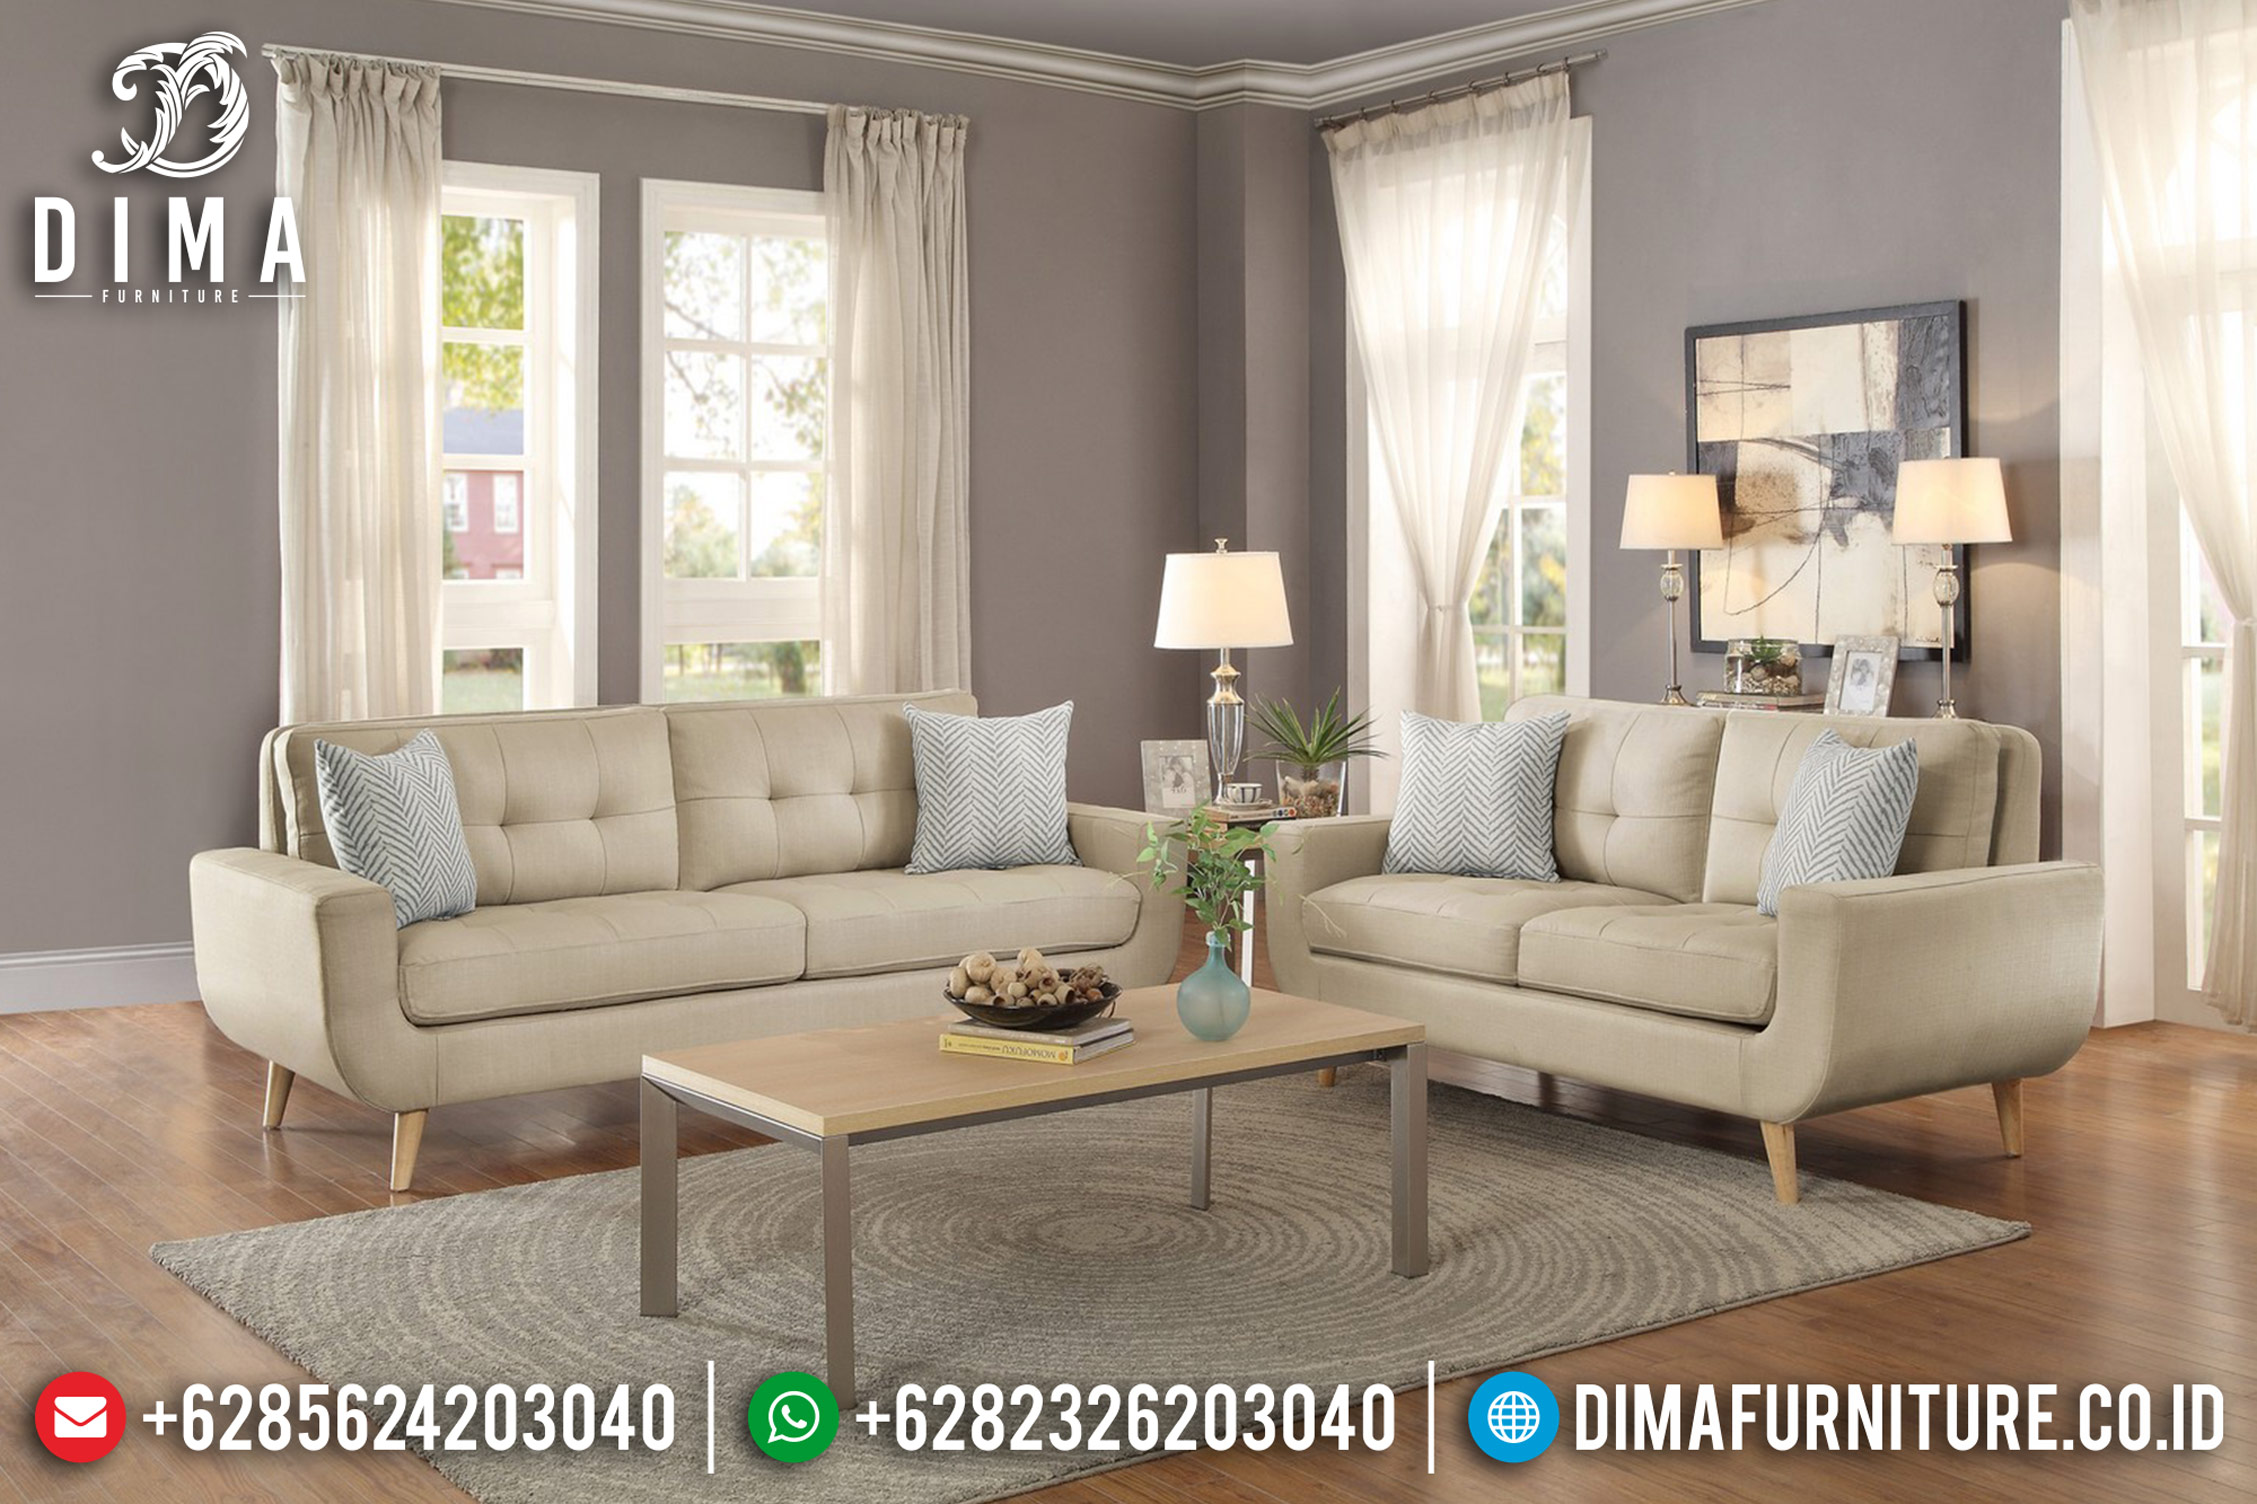 Model Sofa Tamu Jepara 2019-2020 014 Dima Furniture Jepara